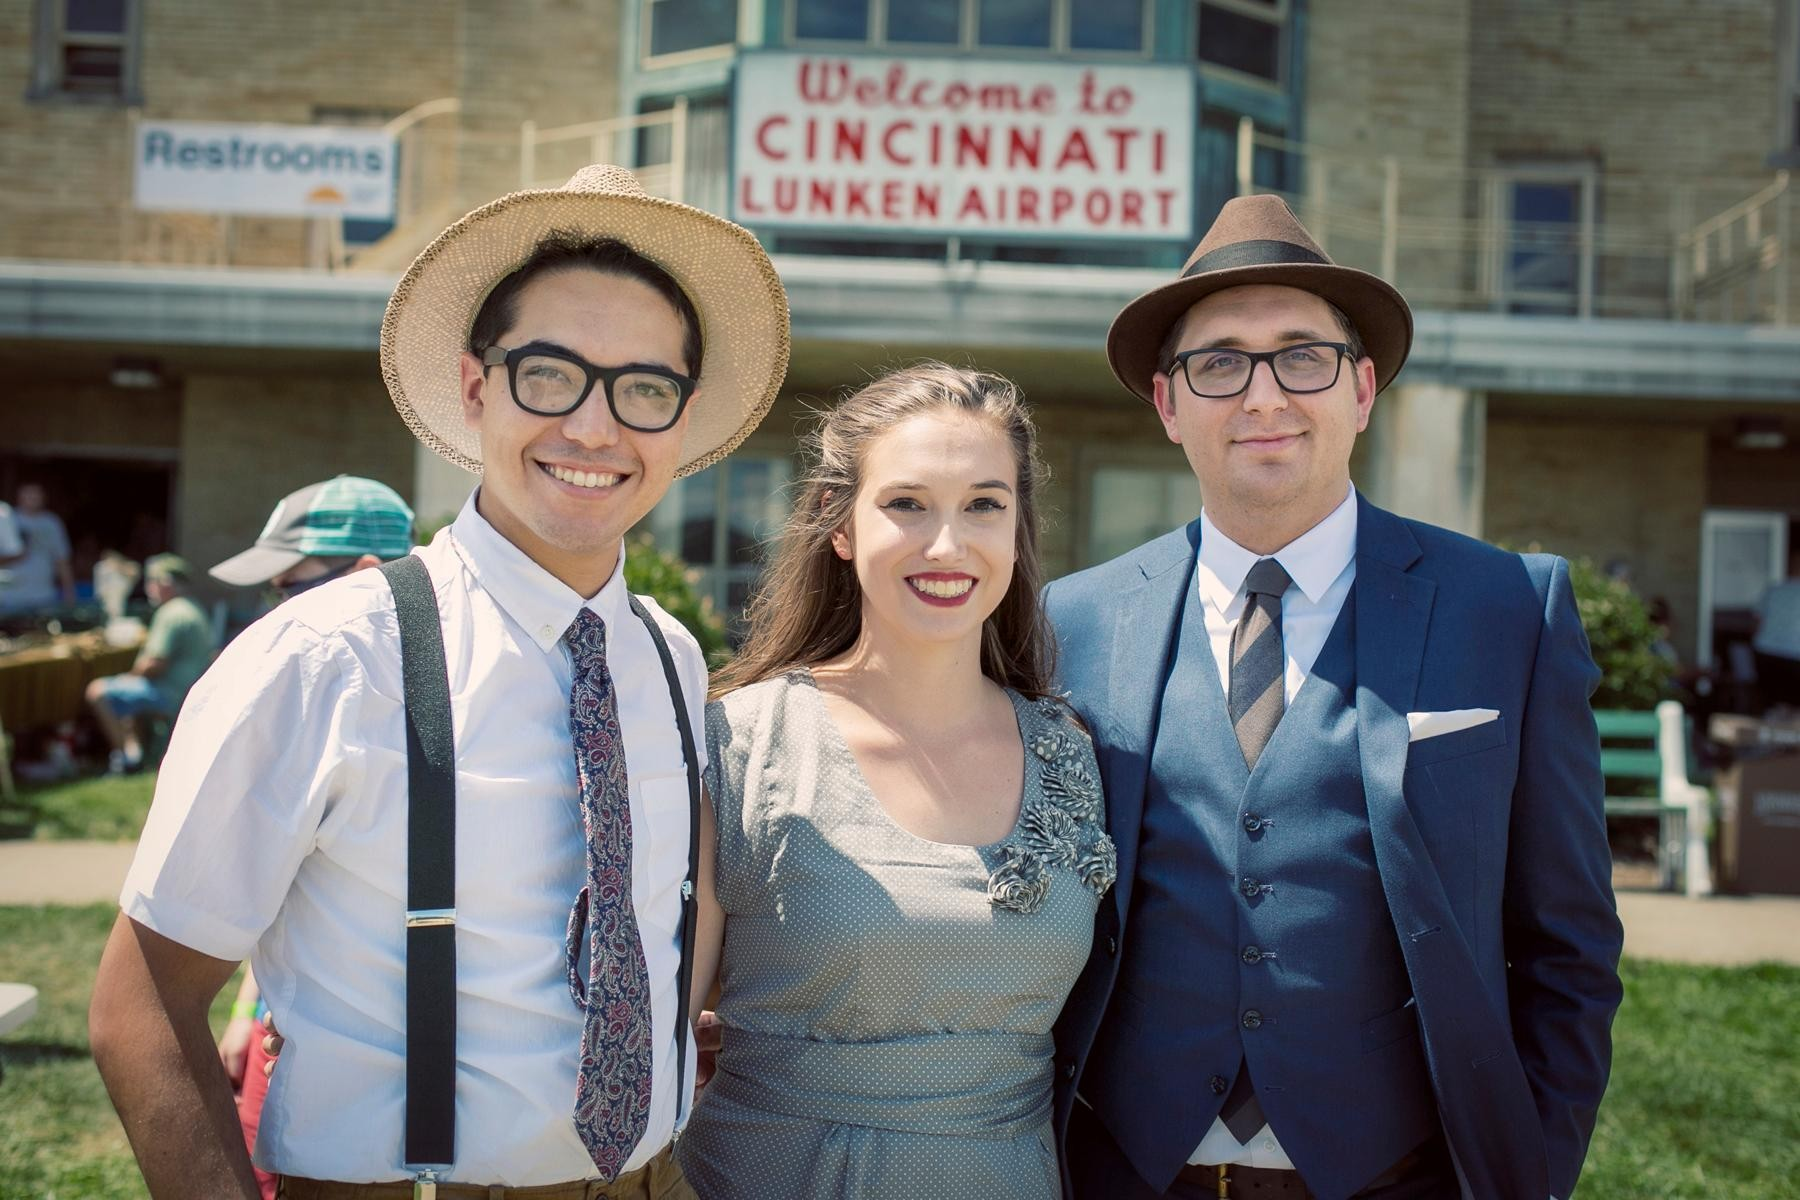 People: Paul Kemp, Lexie Wallingford, and Collin Eckerle / Event: 1940s Day Celebration at Lunken (8.12.17) / Image: Mike Bresnen Photography // Published: 9.3.17